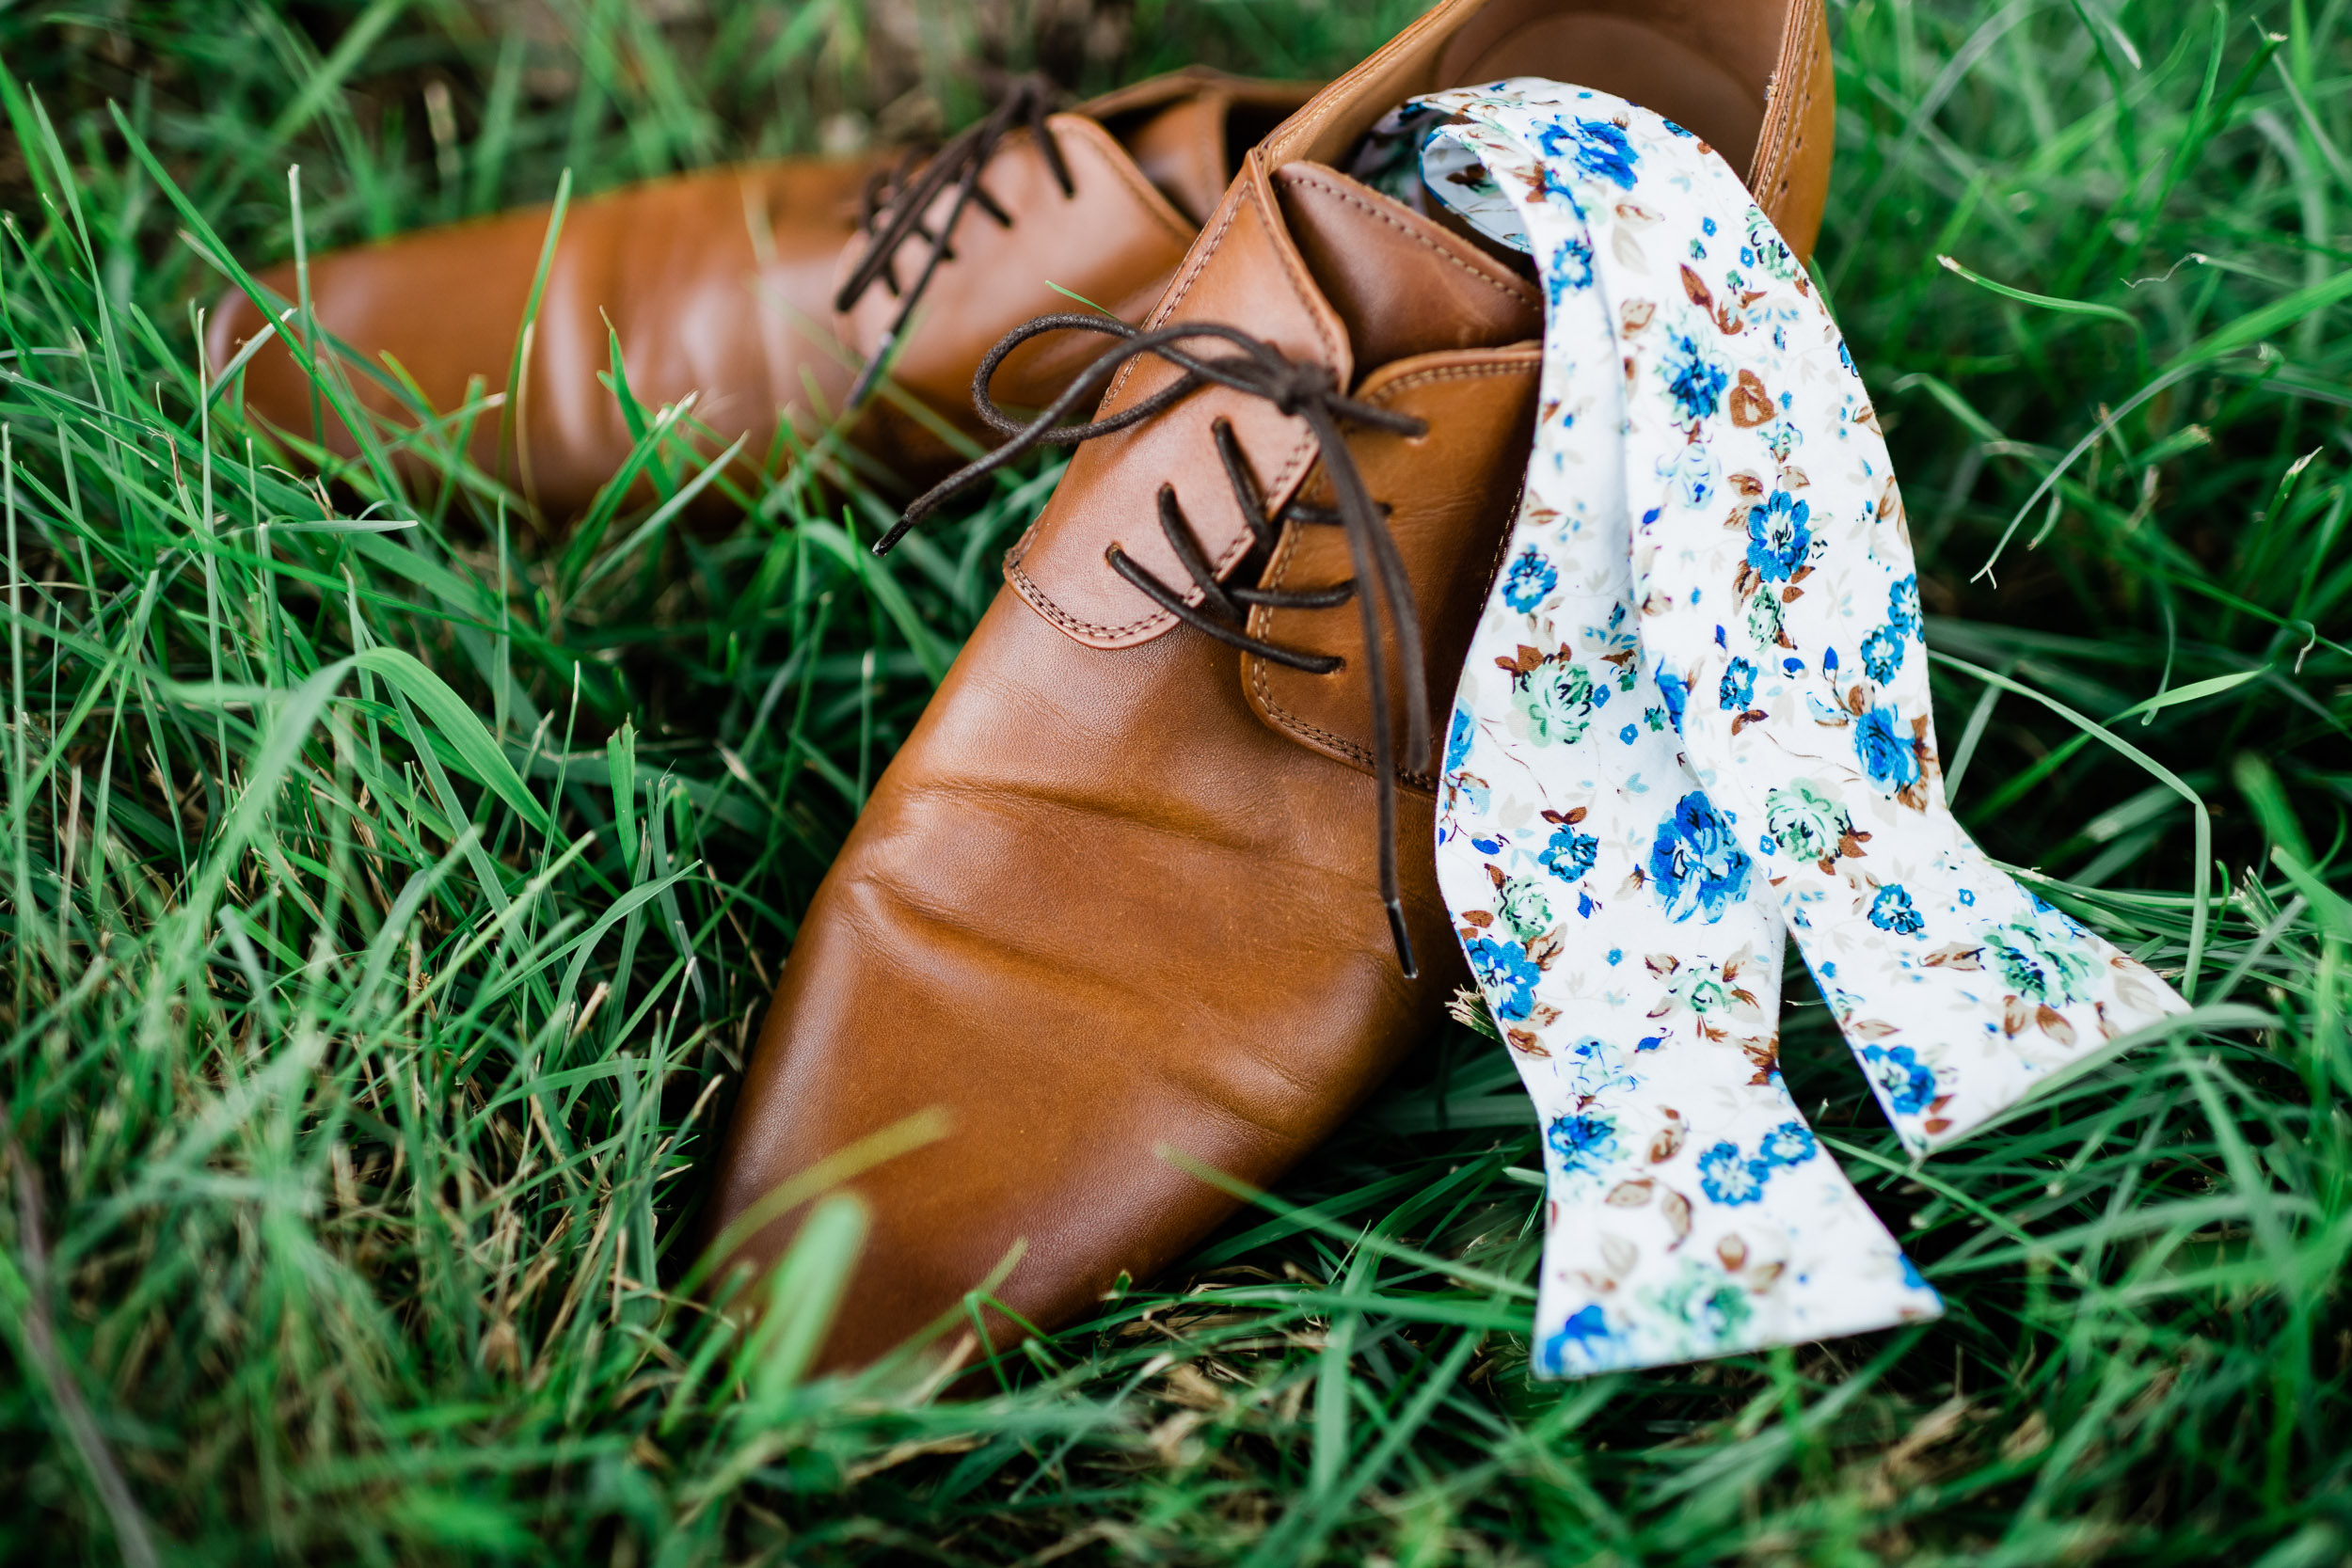 Groom's shoes and bowtie